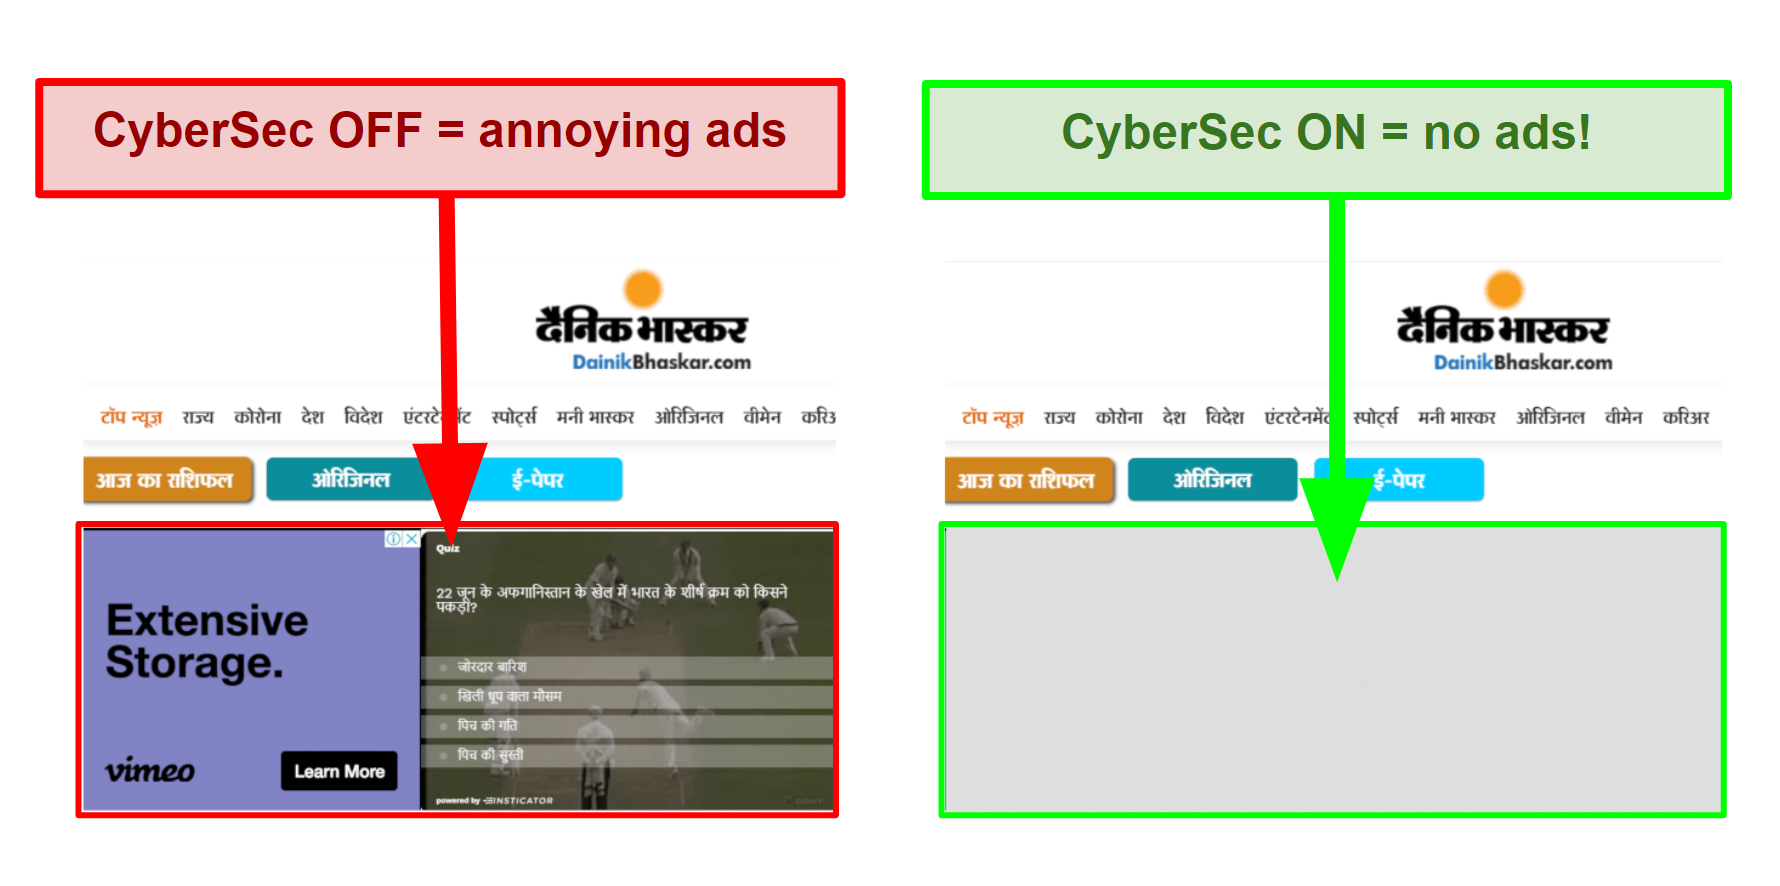 Screenshot of NordVPN on the Times of India website with Cybersec off and ads showing, compared to Cybersec on and no ads showin